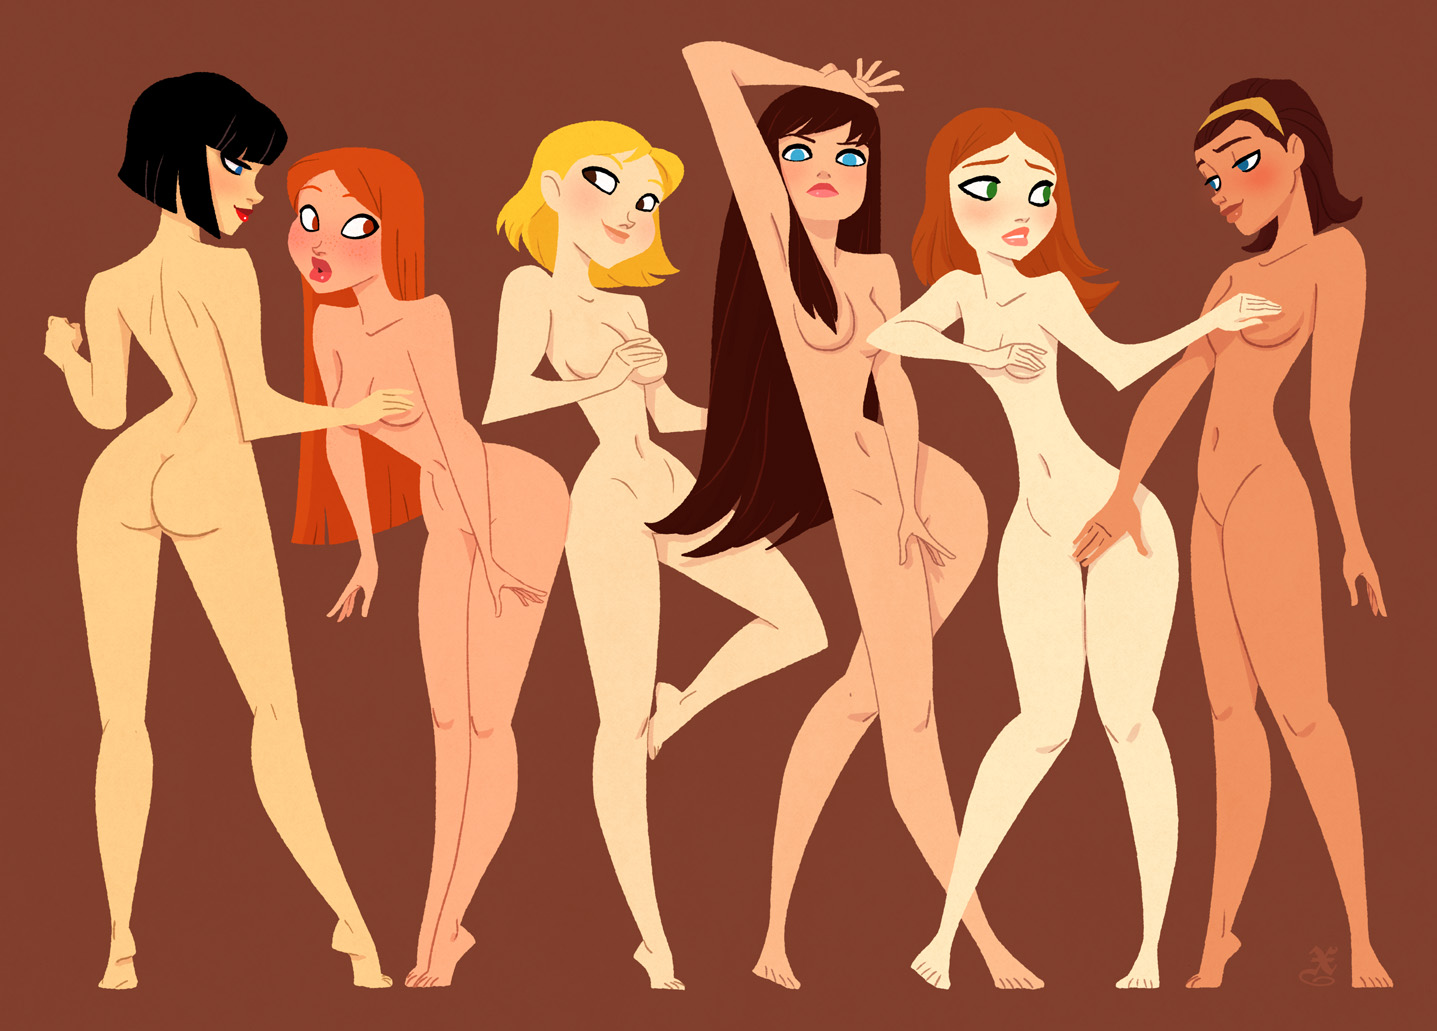 Hot naked cartoon girls and woman softcore scene